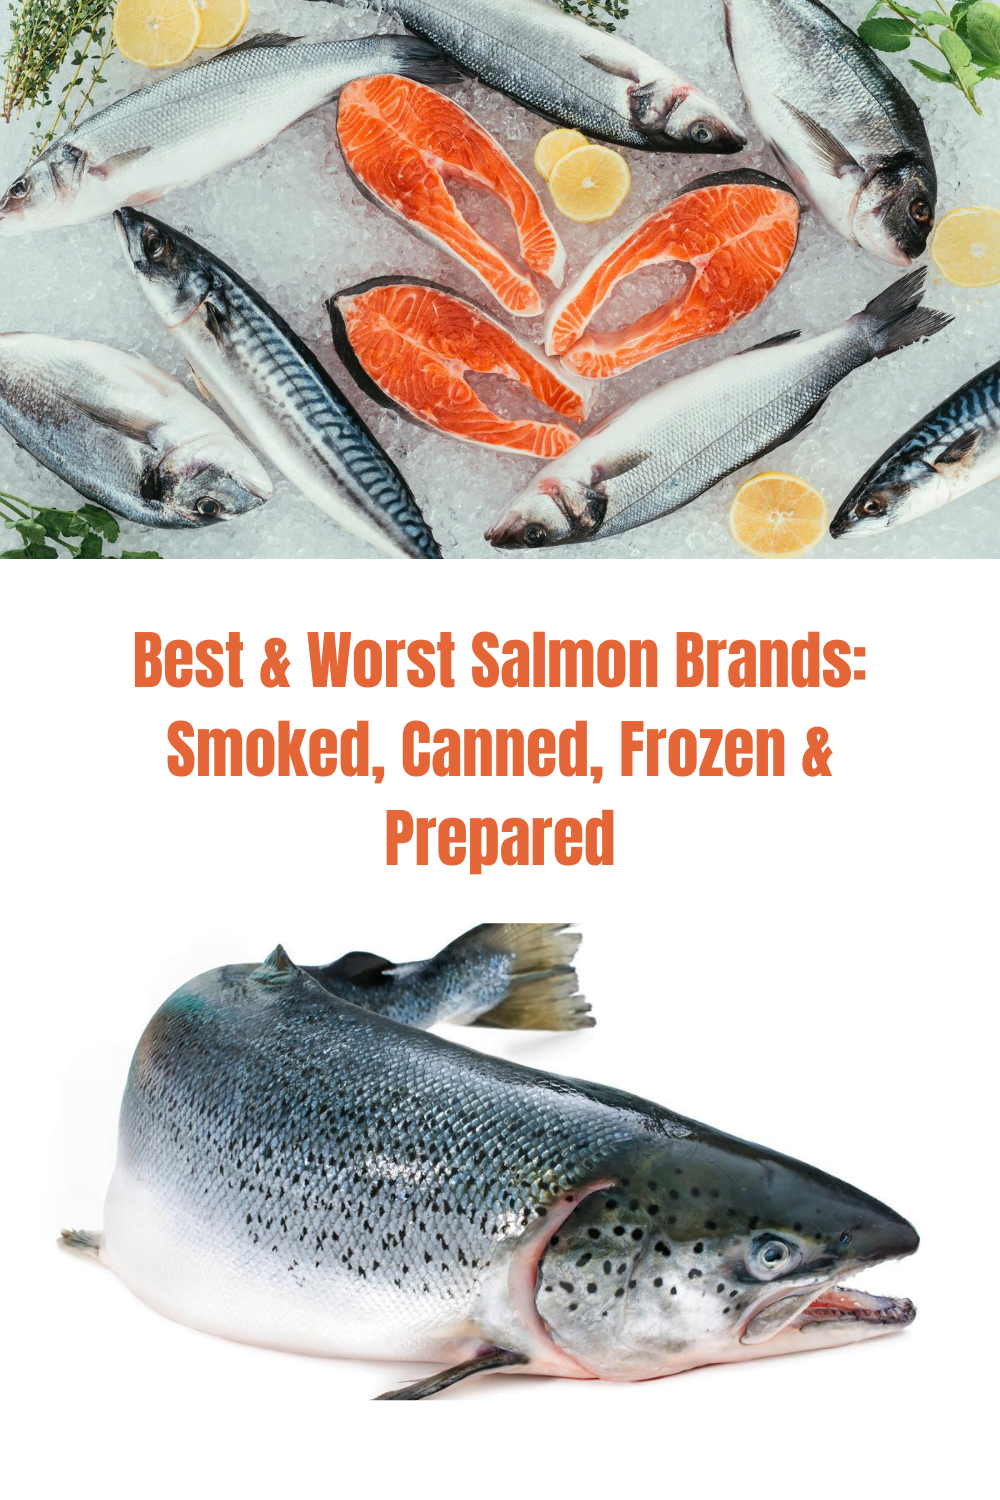 Best & Worst Salmon Brands--Smoked, Frozen, Canned & Prepared 1